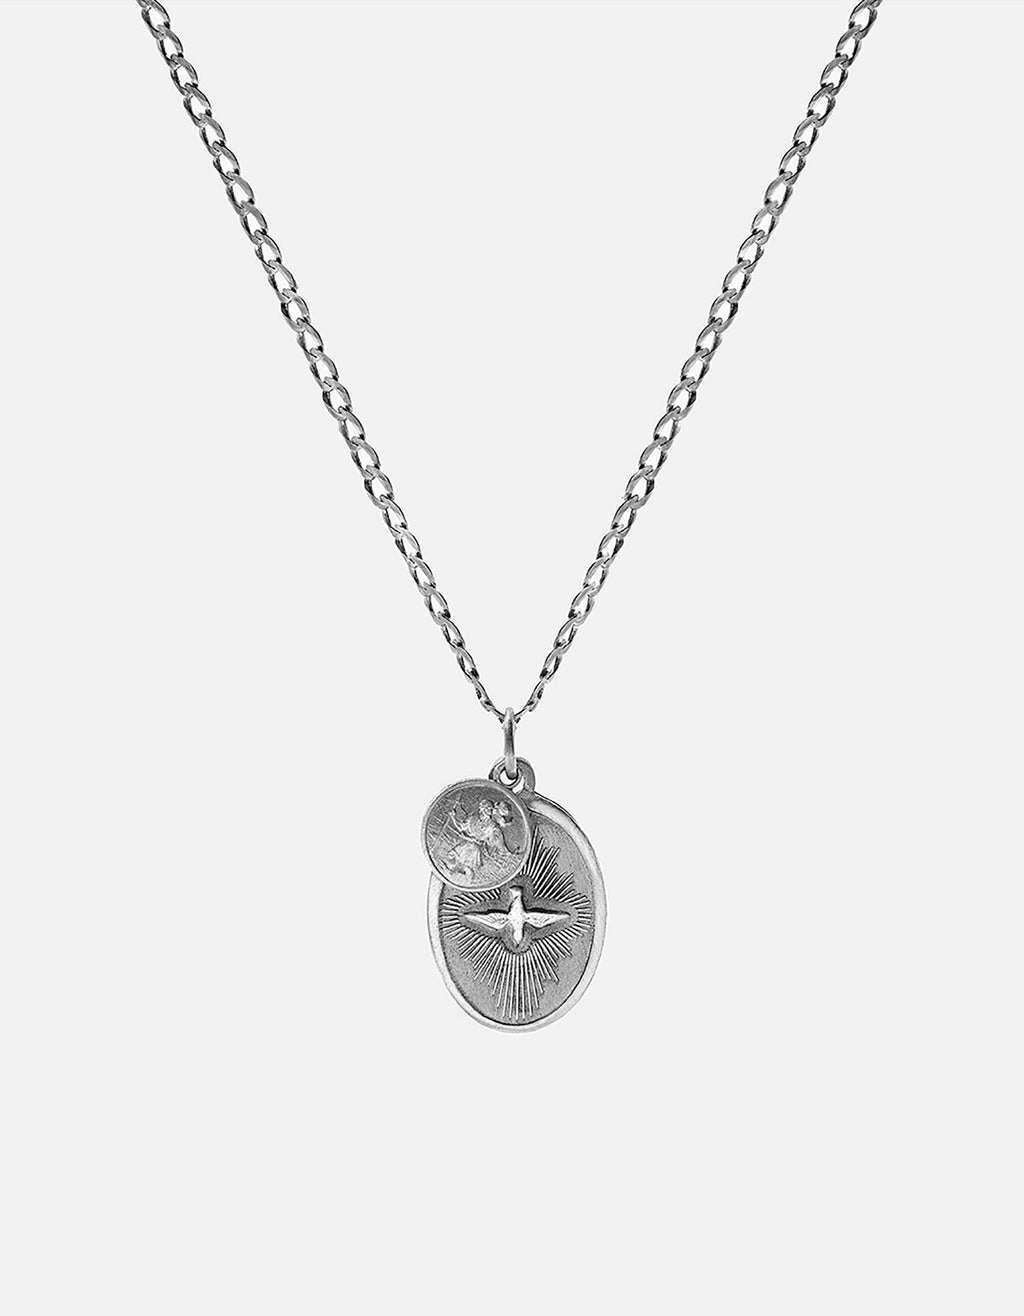 Miansai Dove Pendant Necklace, Sterling Silver, Oxidized